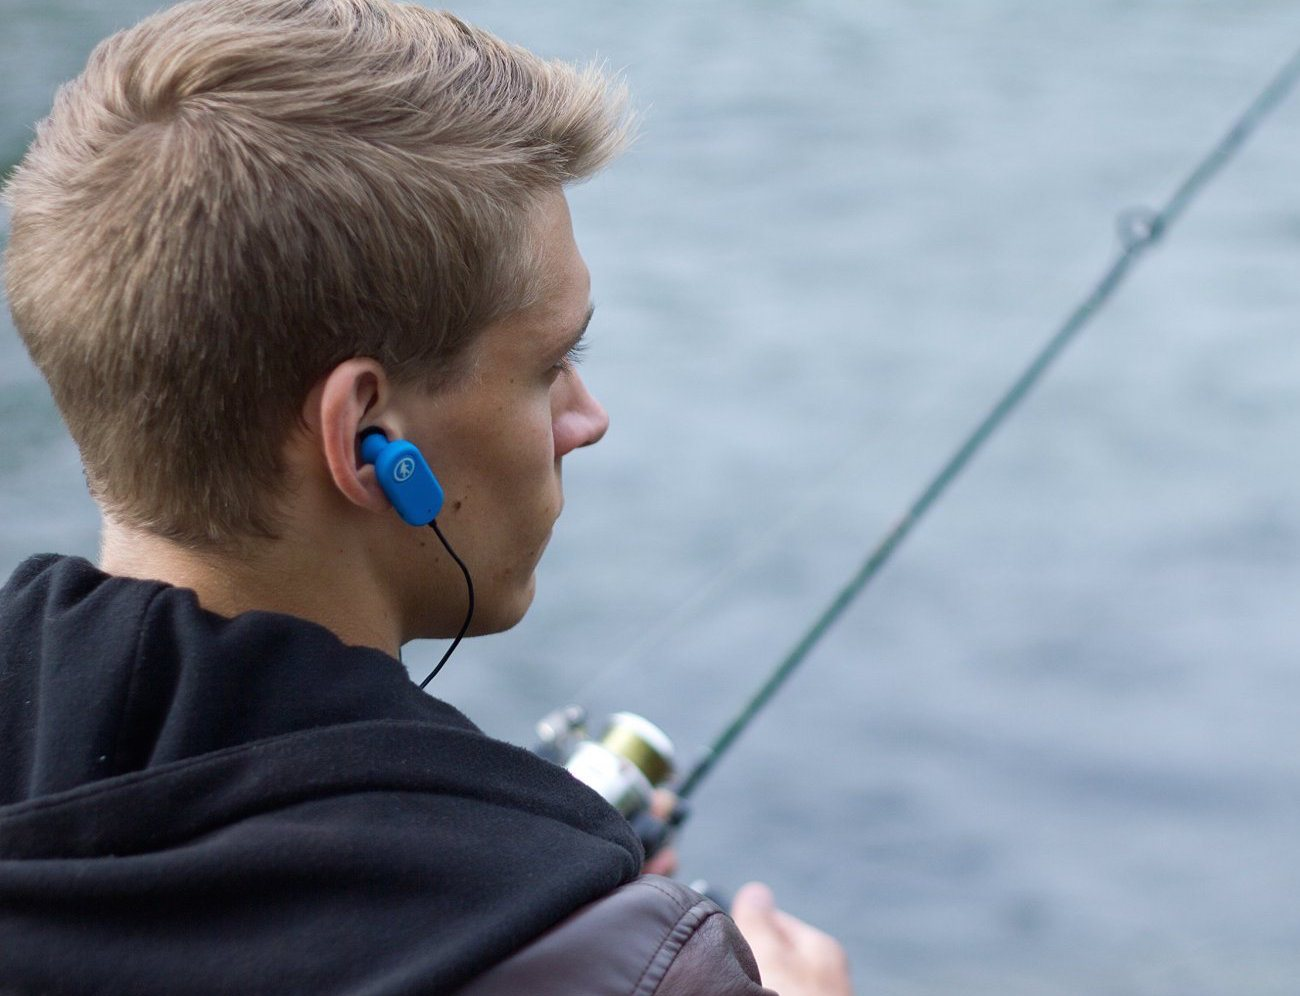 Tags+Wireless+Earbuds+By+Outdoor+Tech